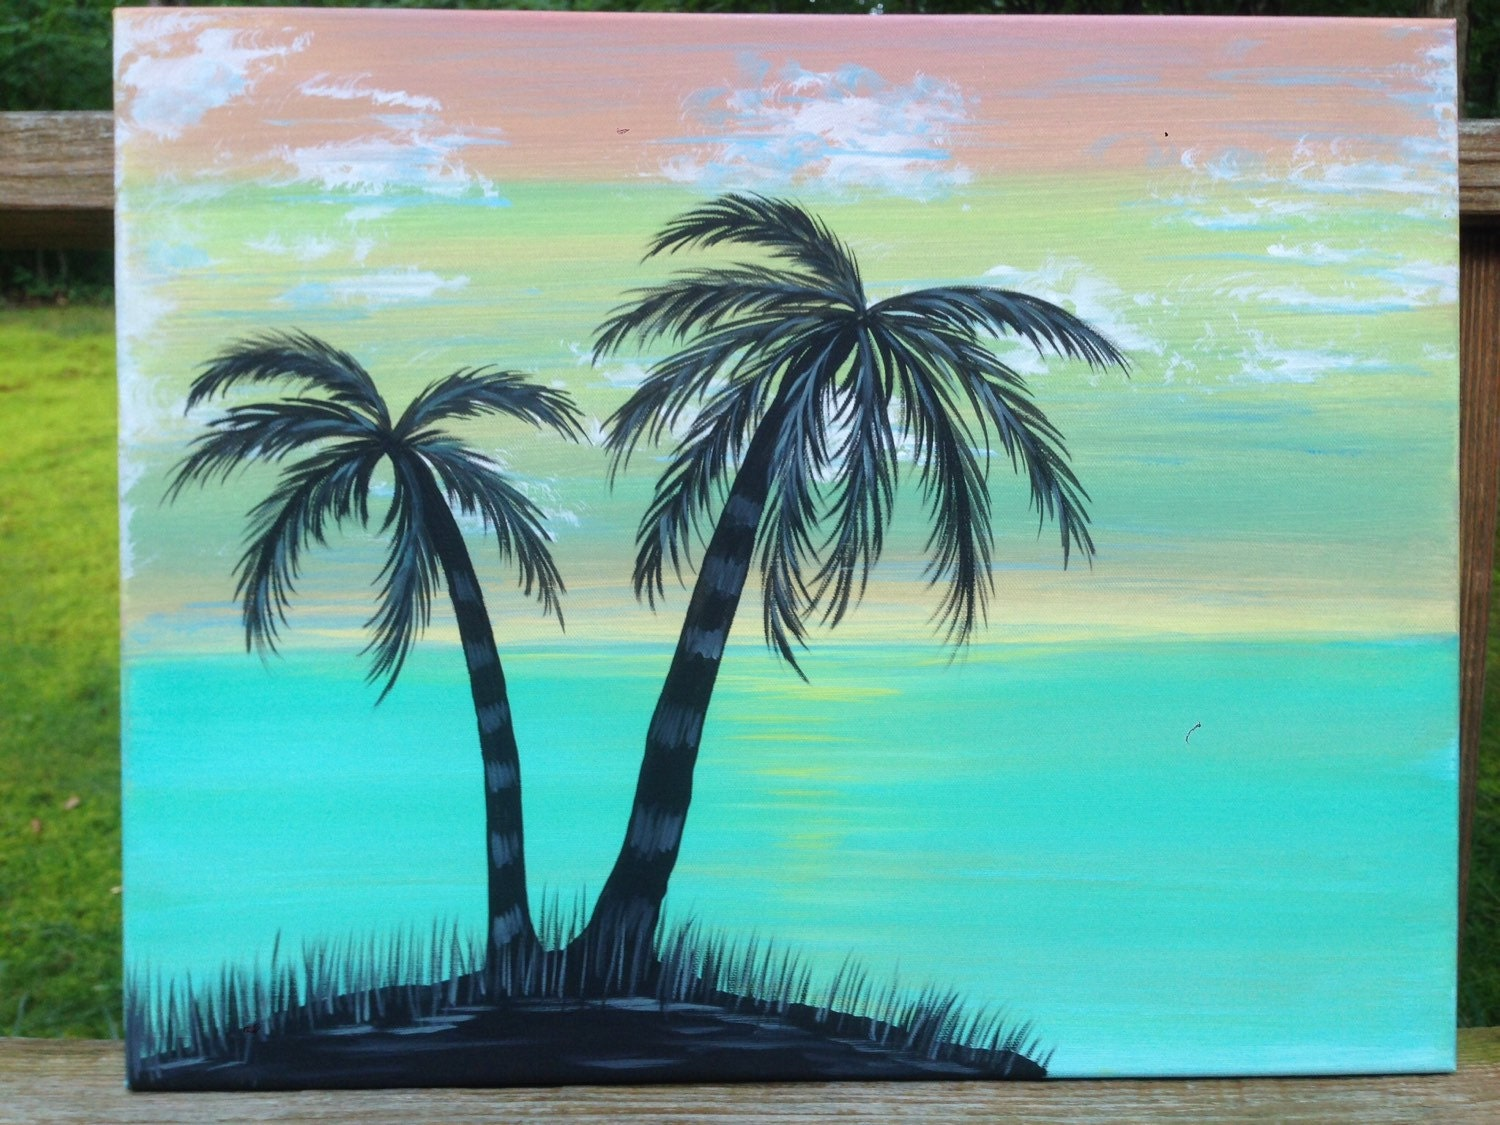 16x20 hand painted abstract palm tree painting for Painting palm trees